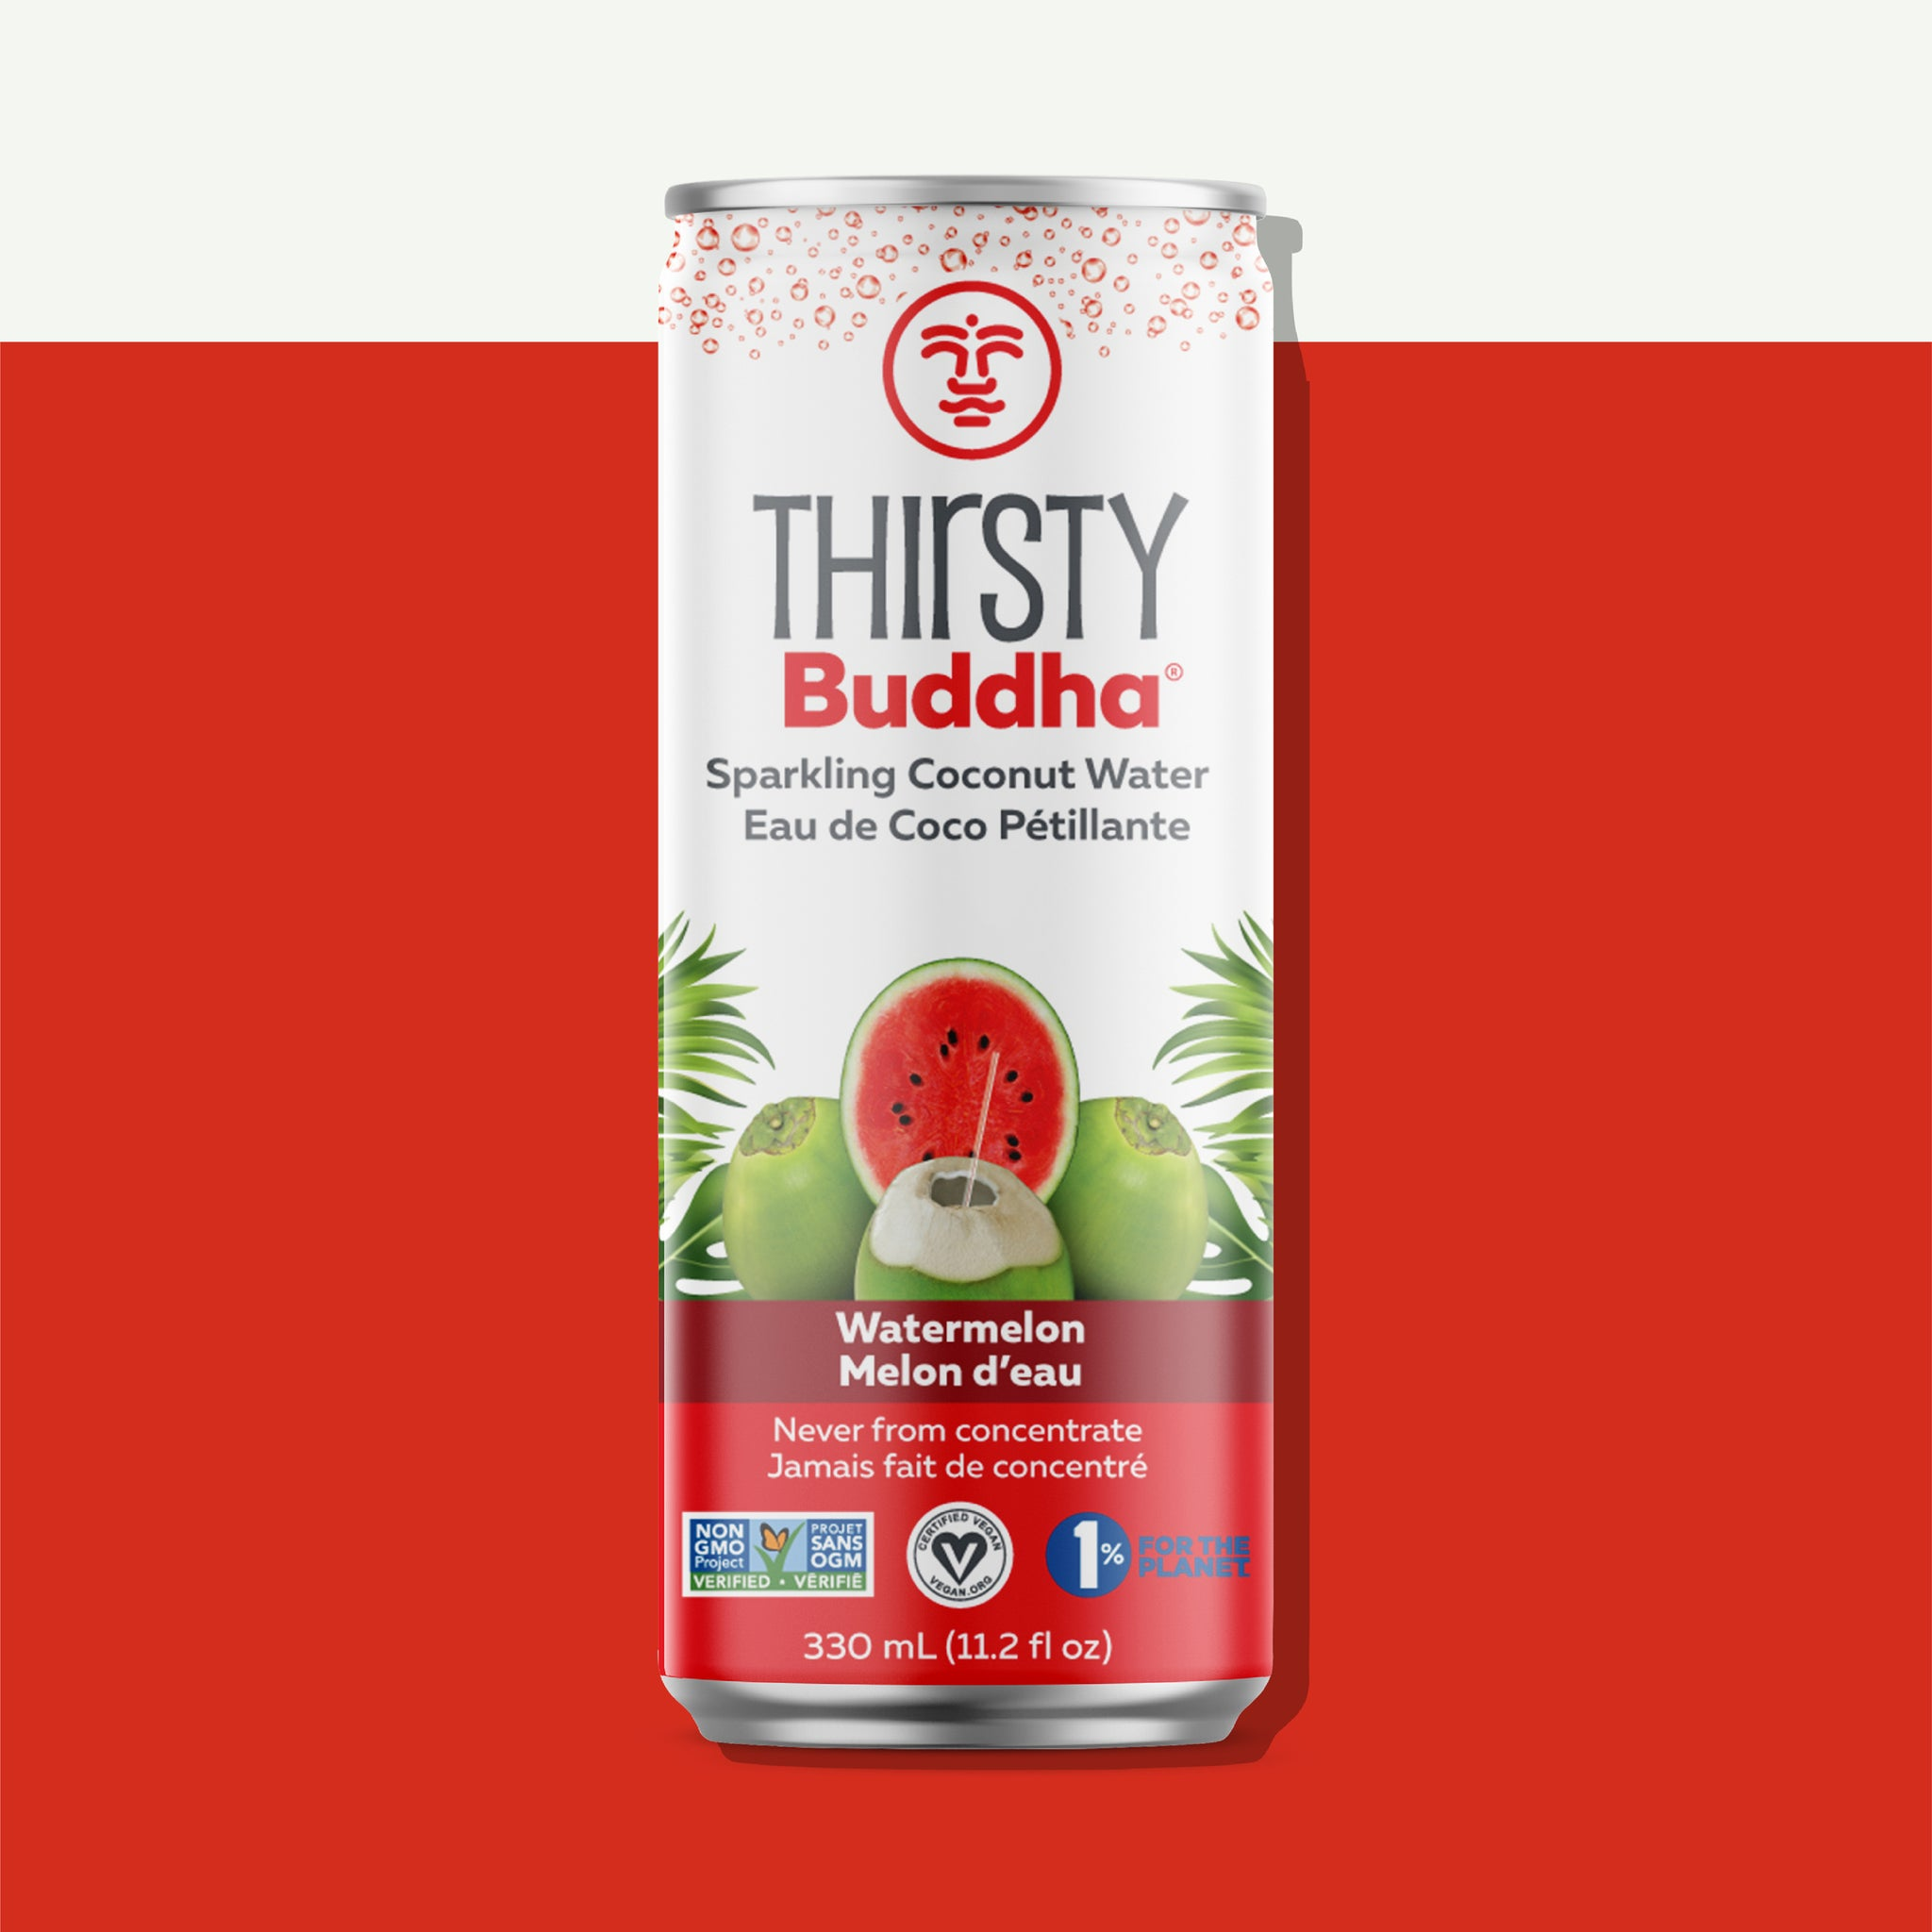 Sparkling Coconut Water with Watermelon (330ml)